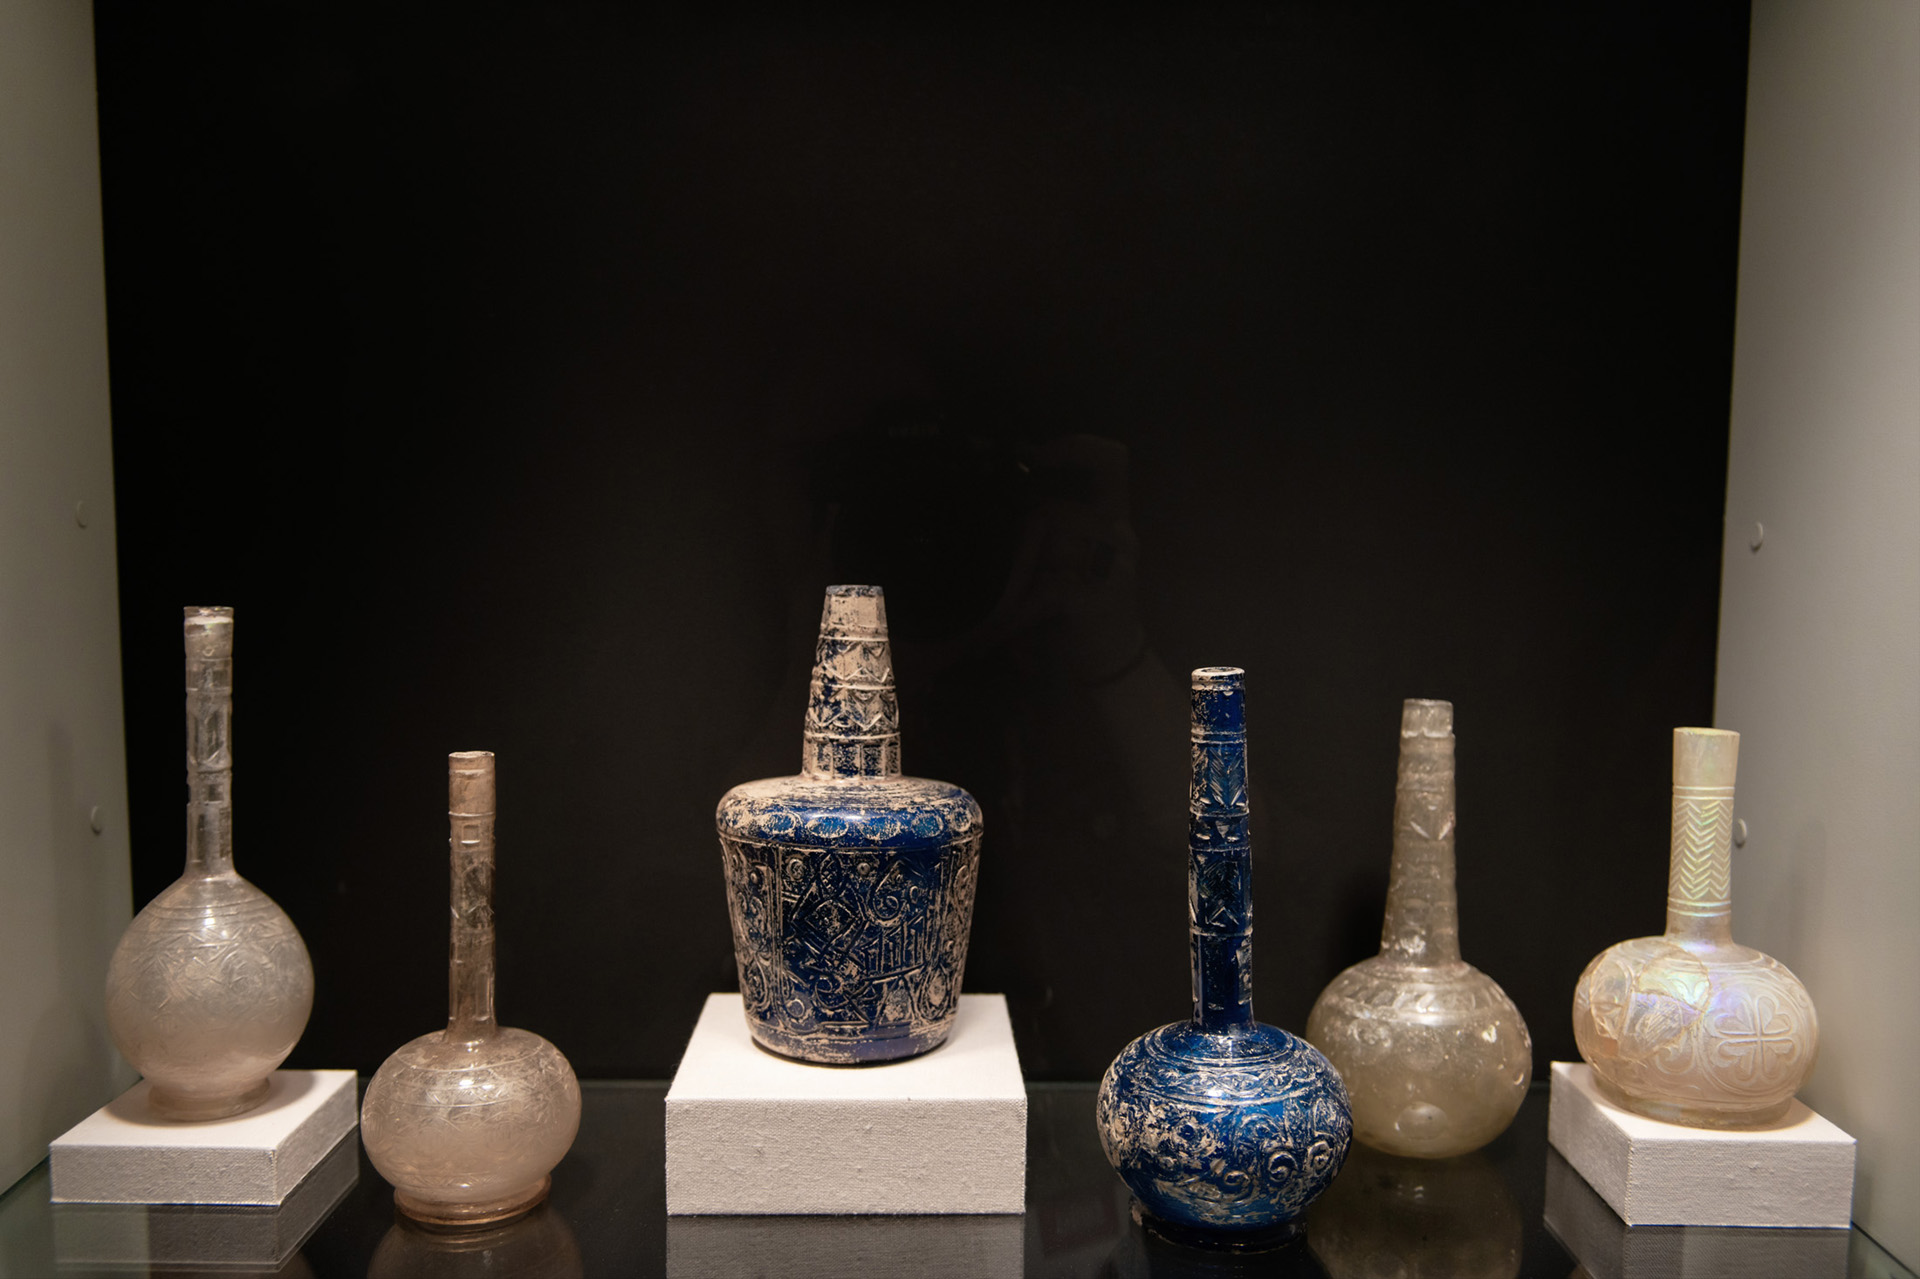 Ancient Vases at the Corning Museum of Glass